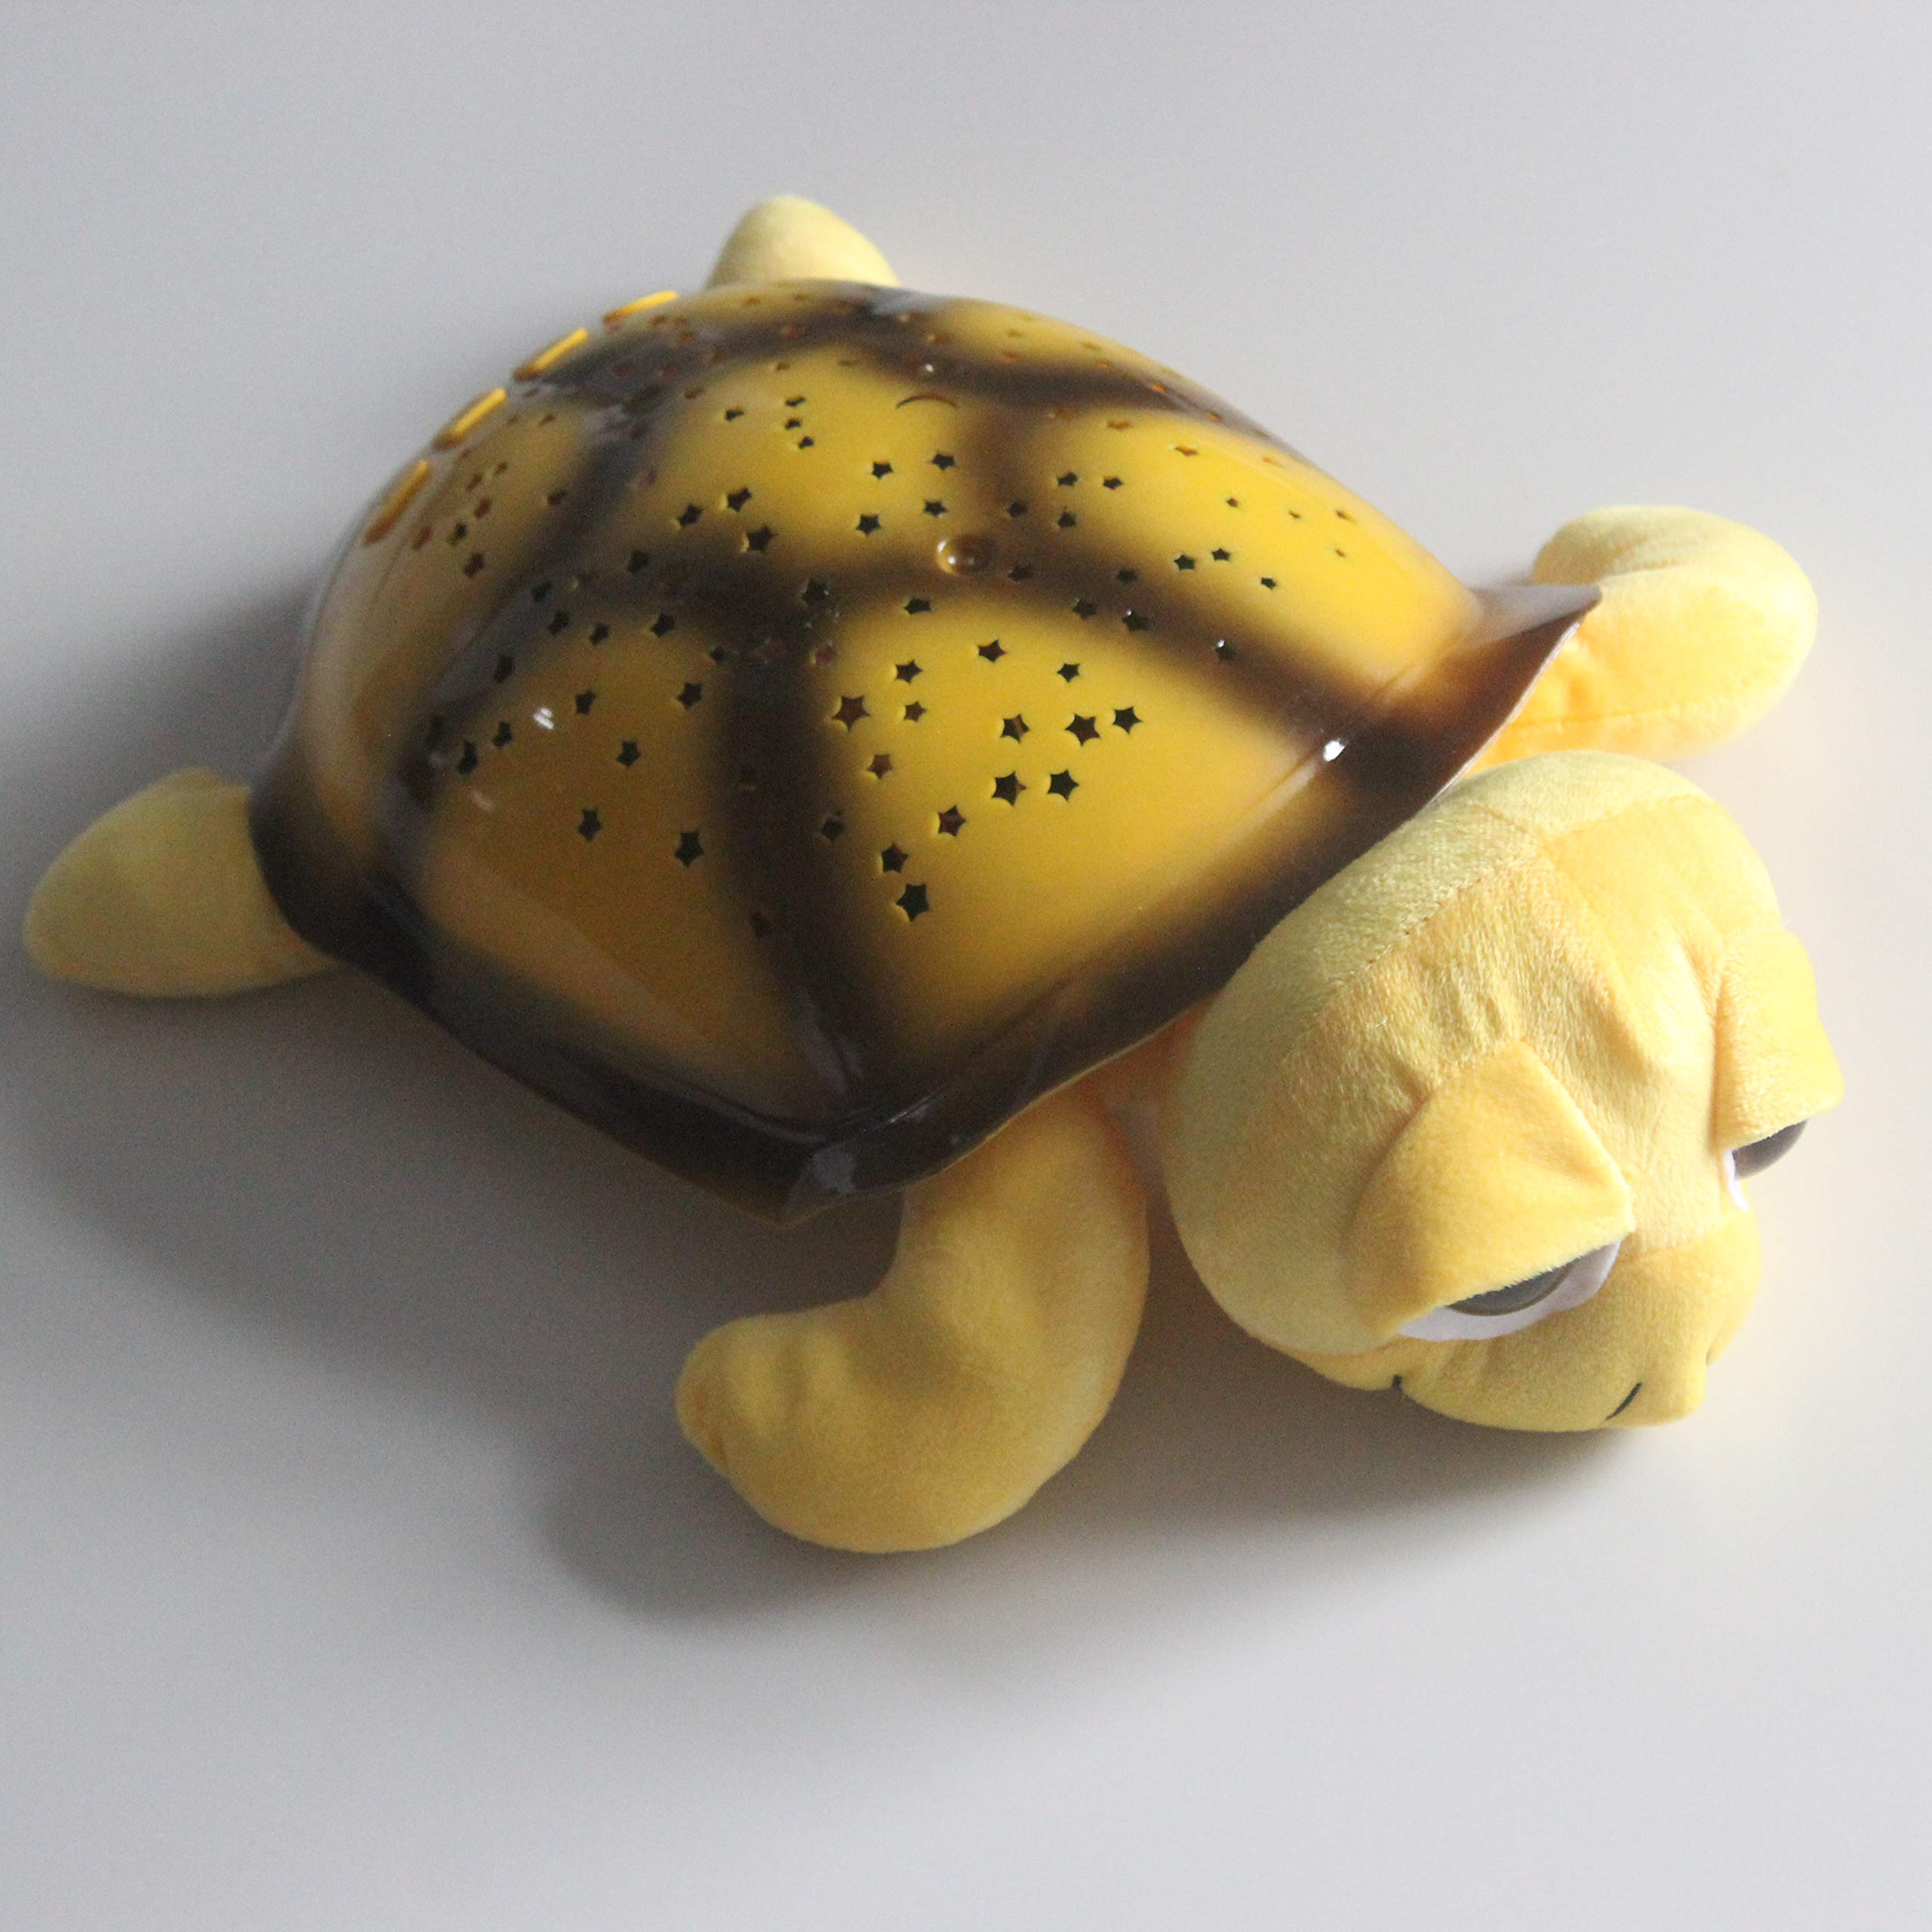 Turtle Night Light Projector Lamp Sleep Soothing 4 Colors Lights Stars Moons Starry Night Sky Baby Slumber Ease with Music Great Kids Gifts Children Toys (Yellow)